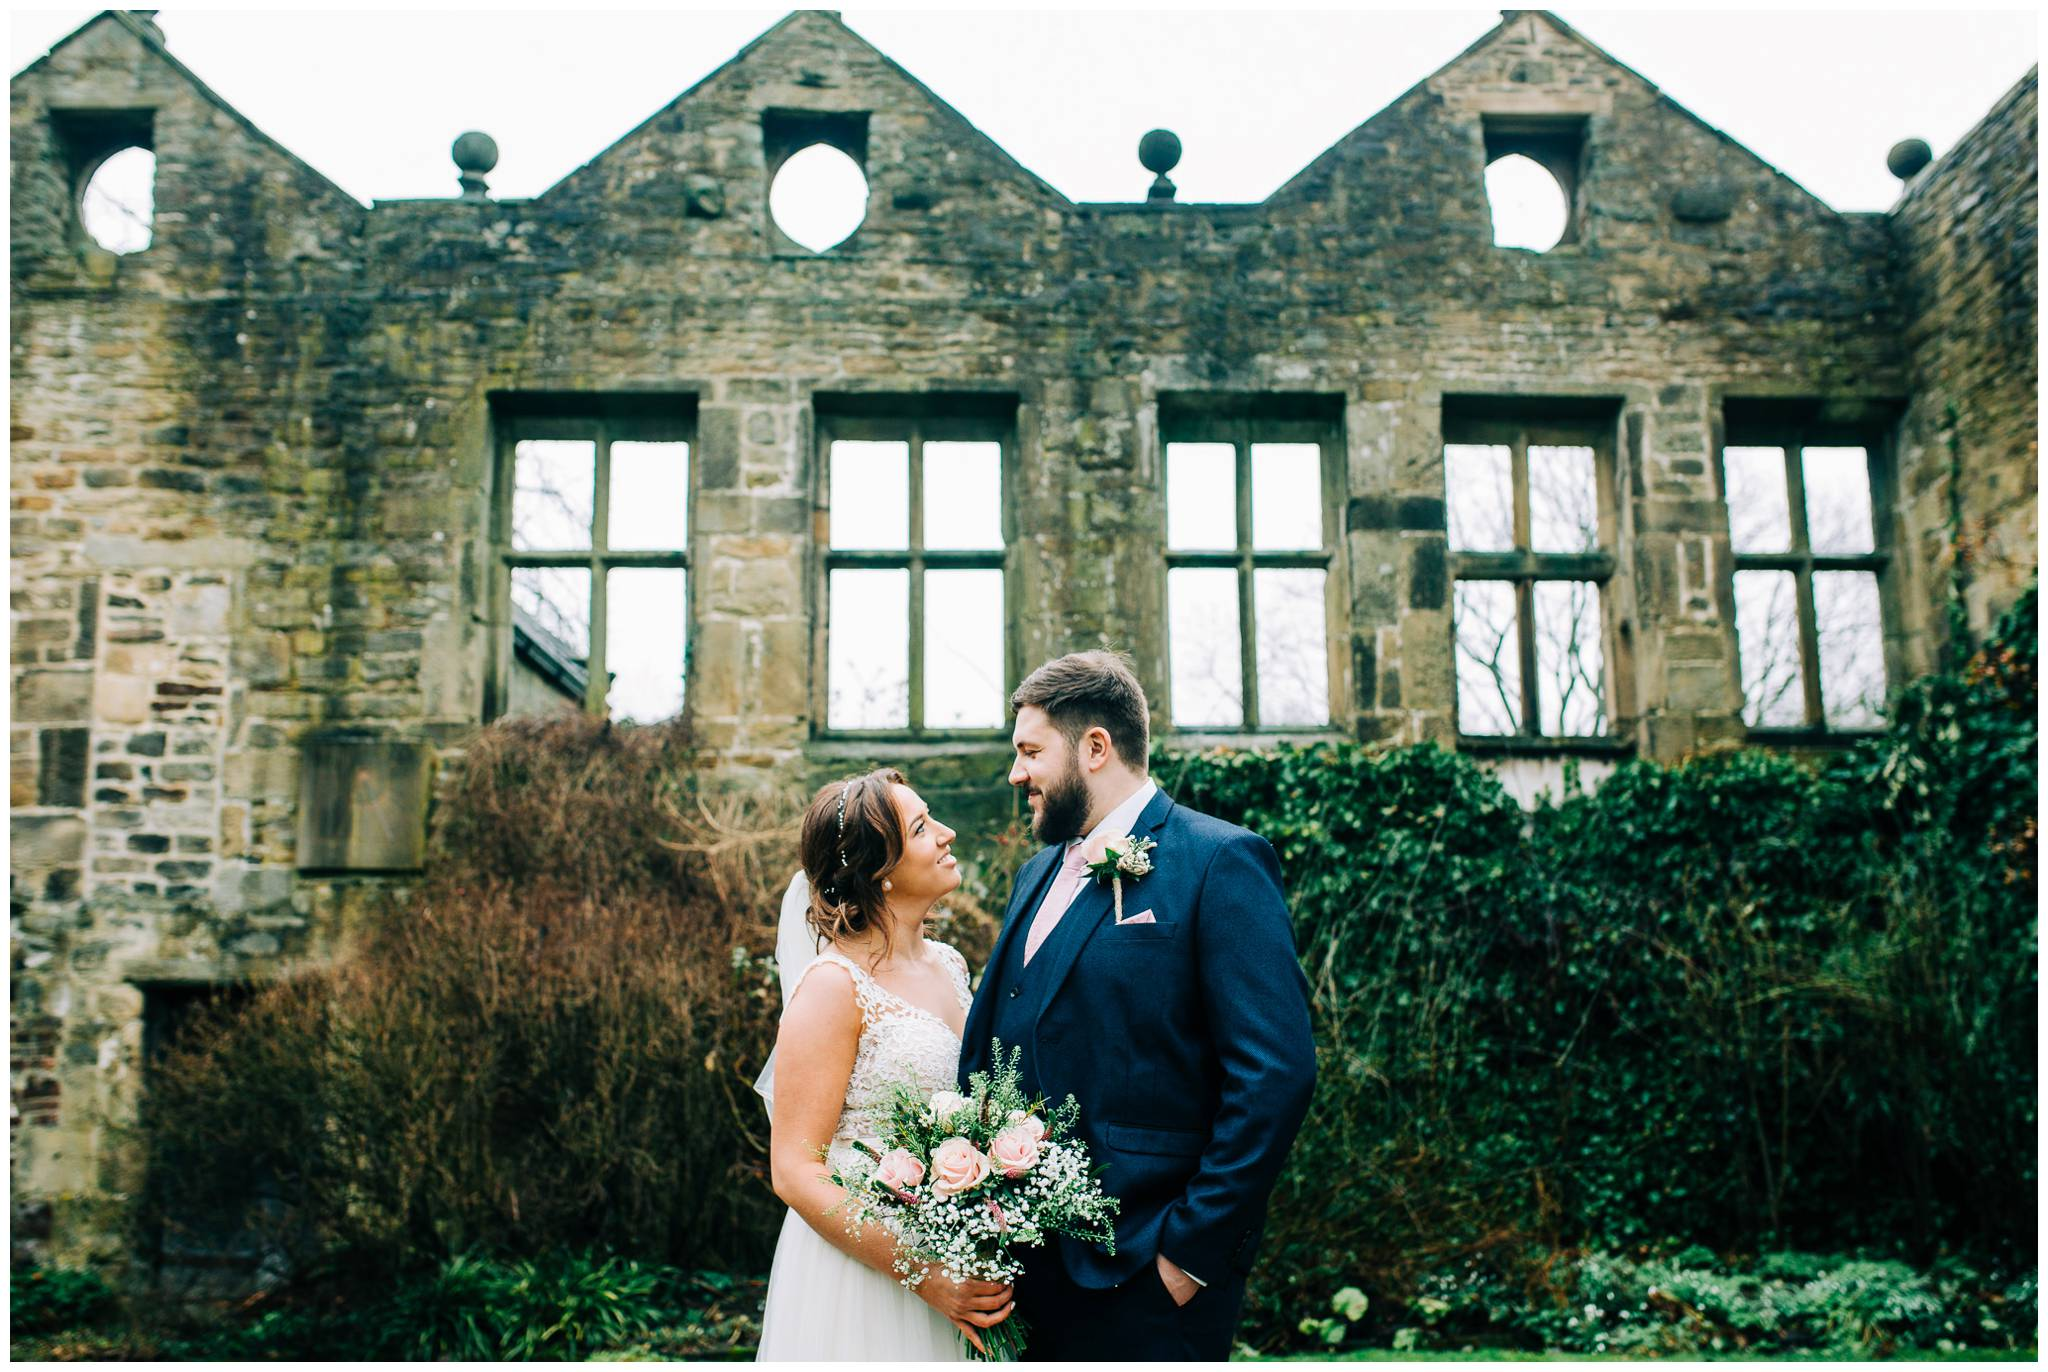 East Riddlesden Hall Photographer - Rustic winter Barn Wedding_0042.jpg